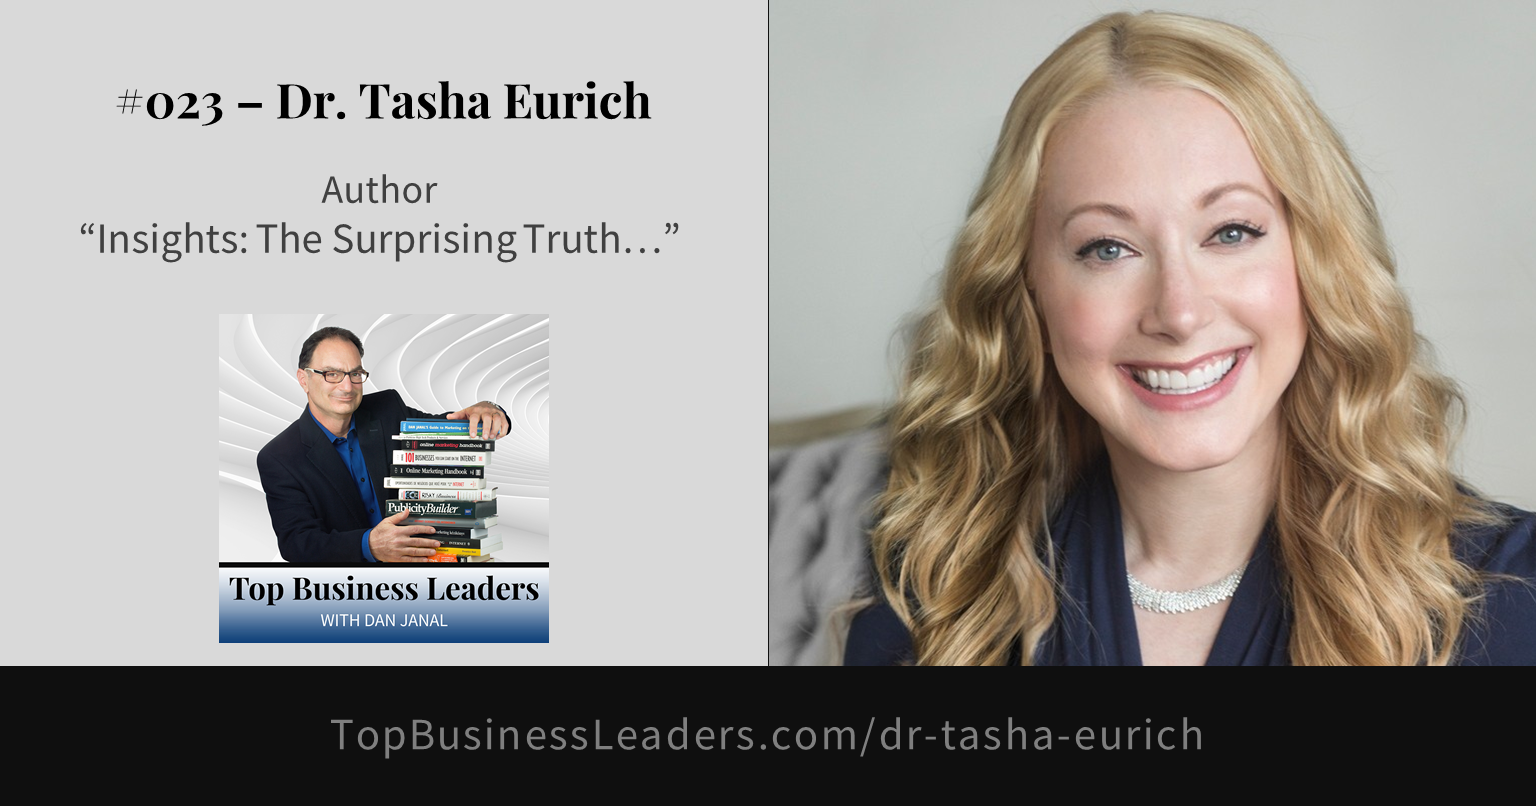 dr-tasha-eurich-author-insight-surprising-truth